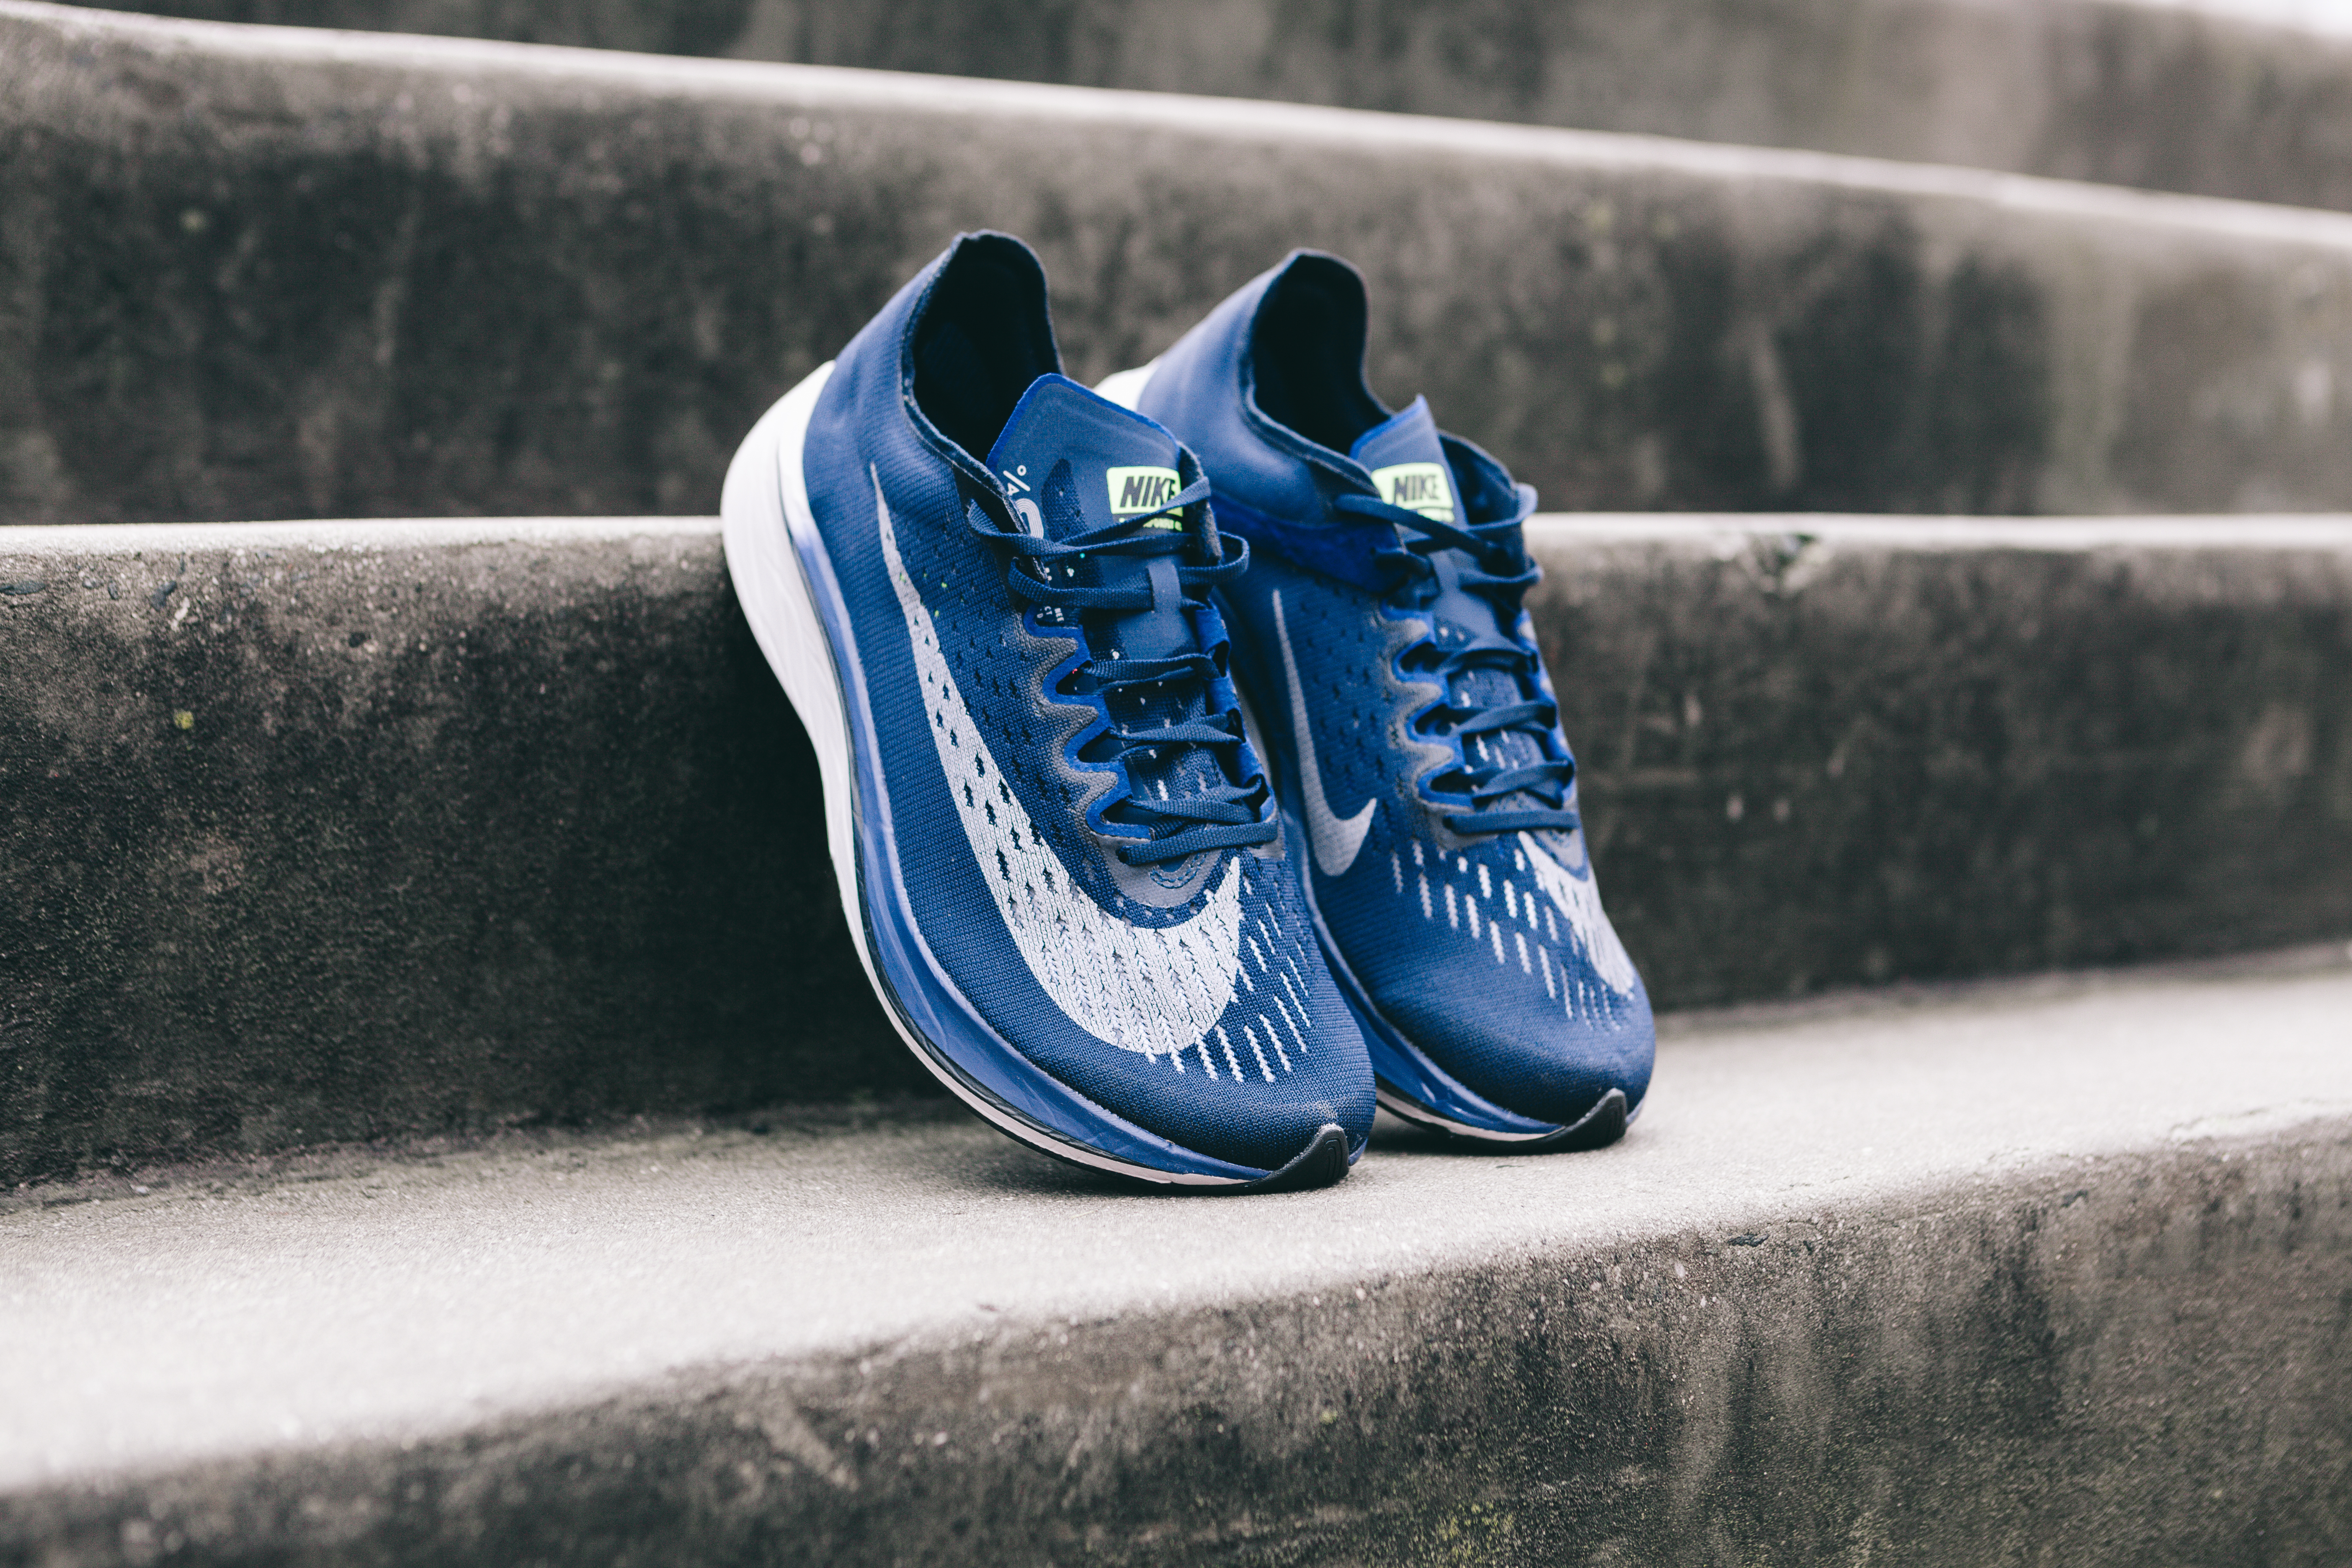 a3069dd9ce375 The Nike ZoomX Vaporfly 4% is Here in Royal Blue